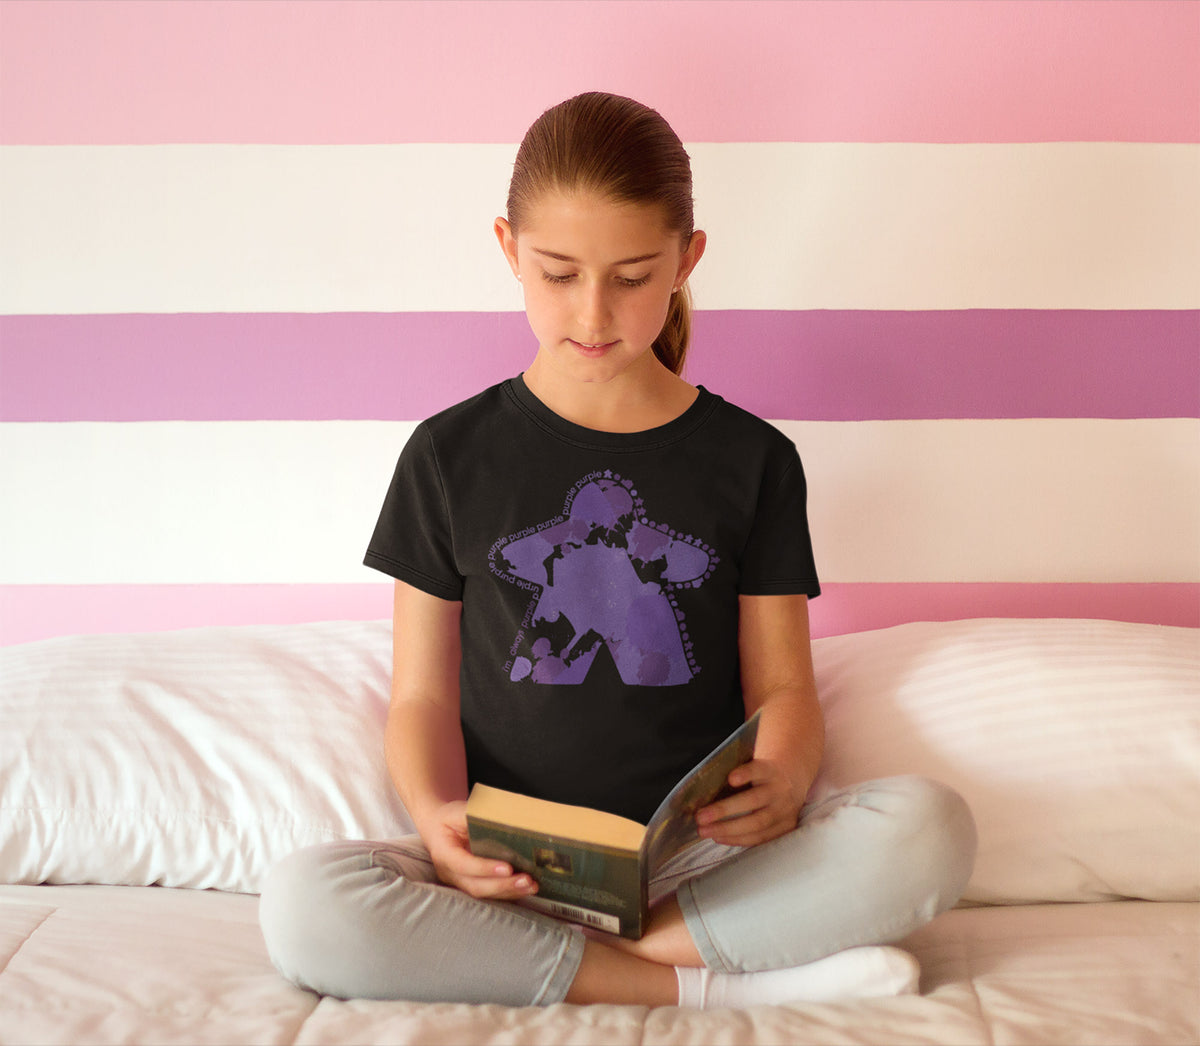 I'm Always Purple Meeple Board Game T-Shirt Action Shot Girl's